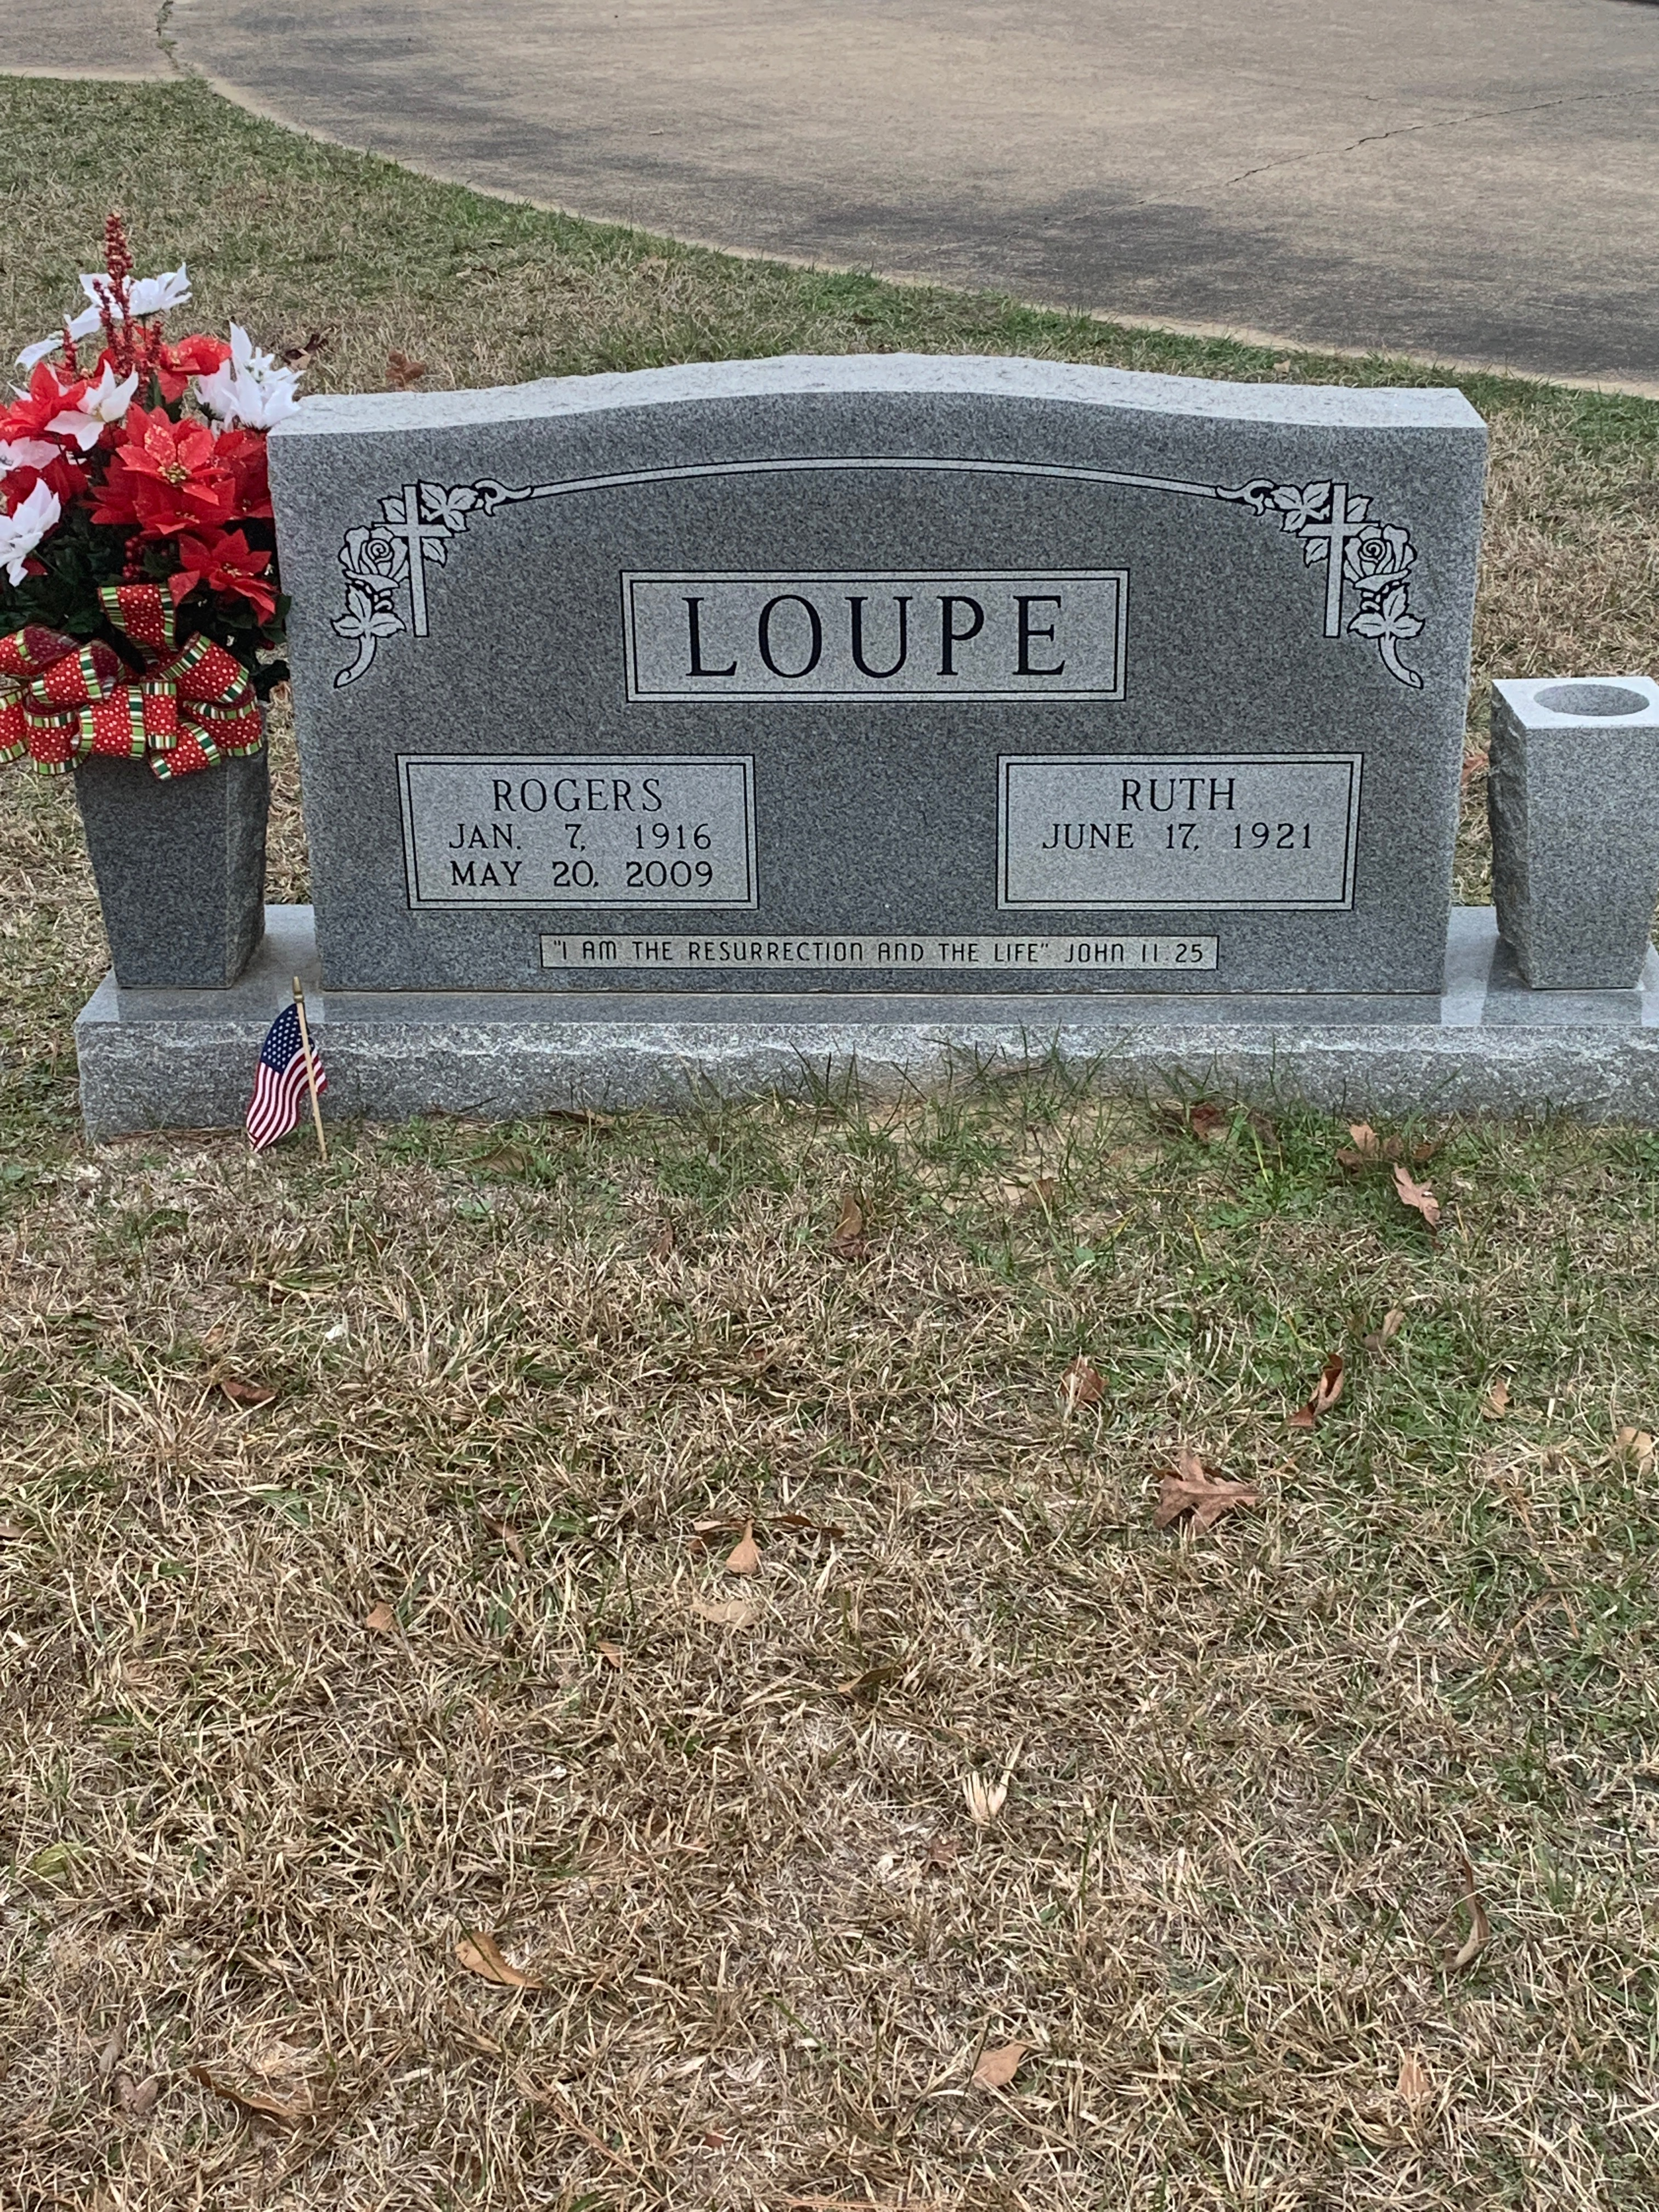 Rogers Peter Loupe 1916 2009 Find A Grave Memorial